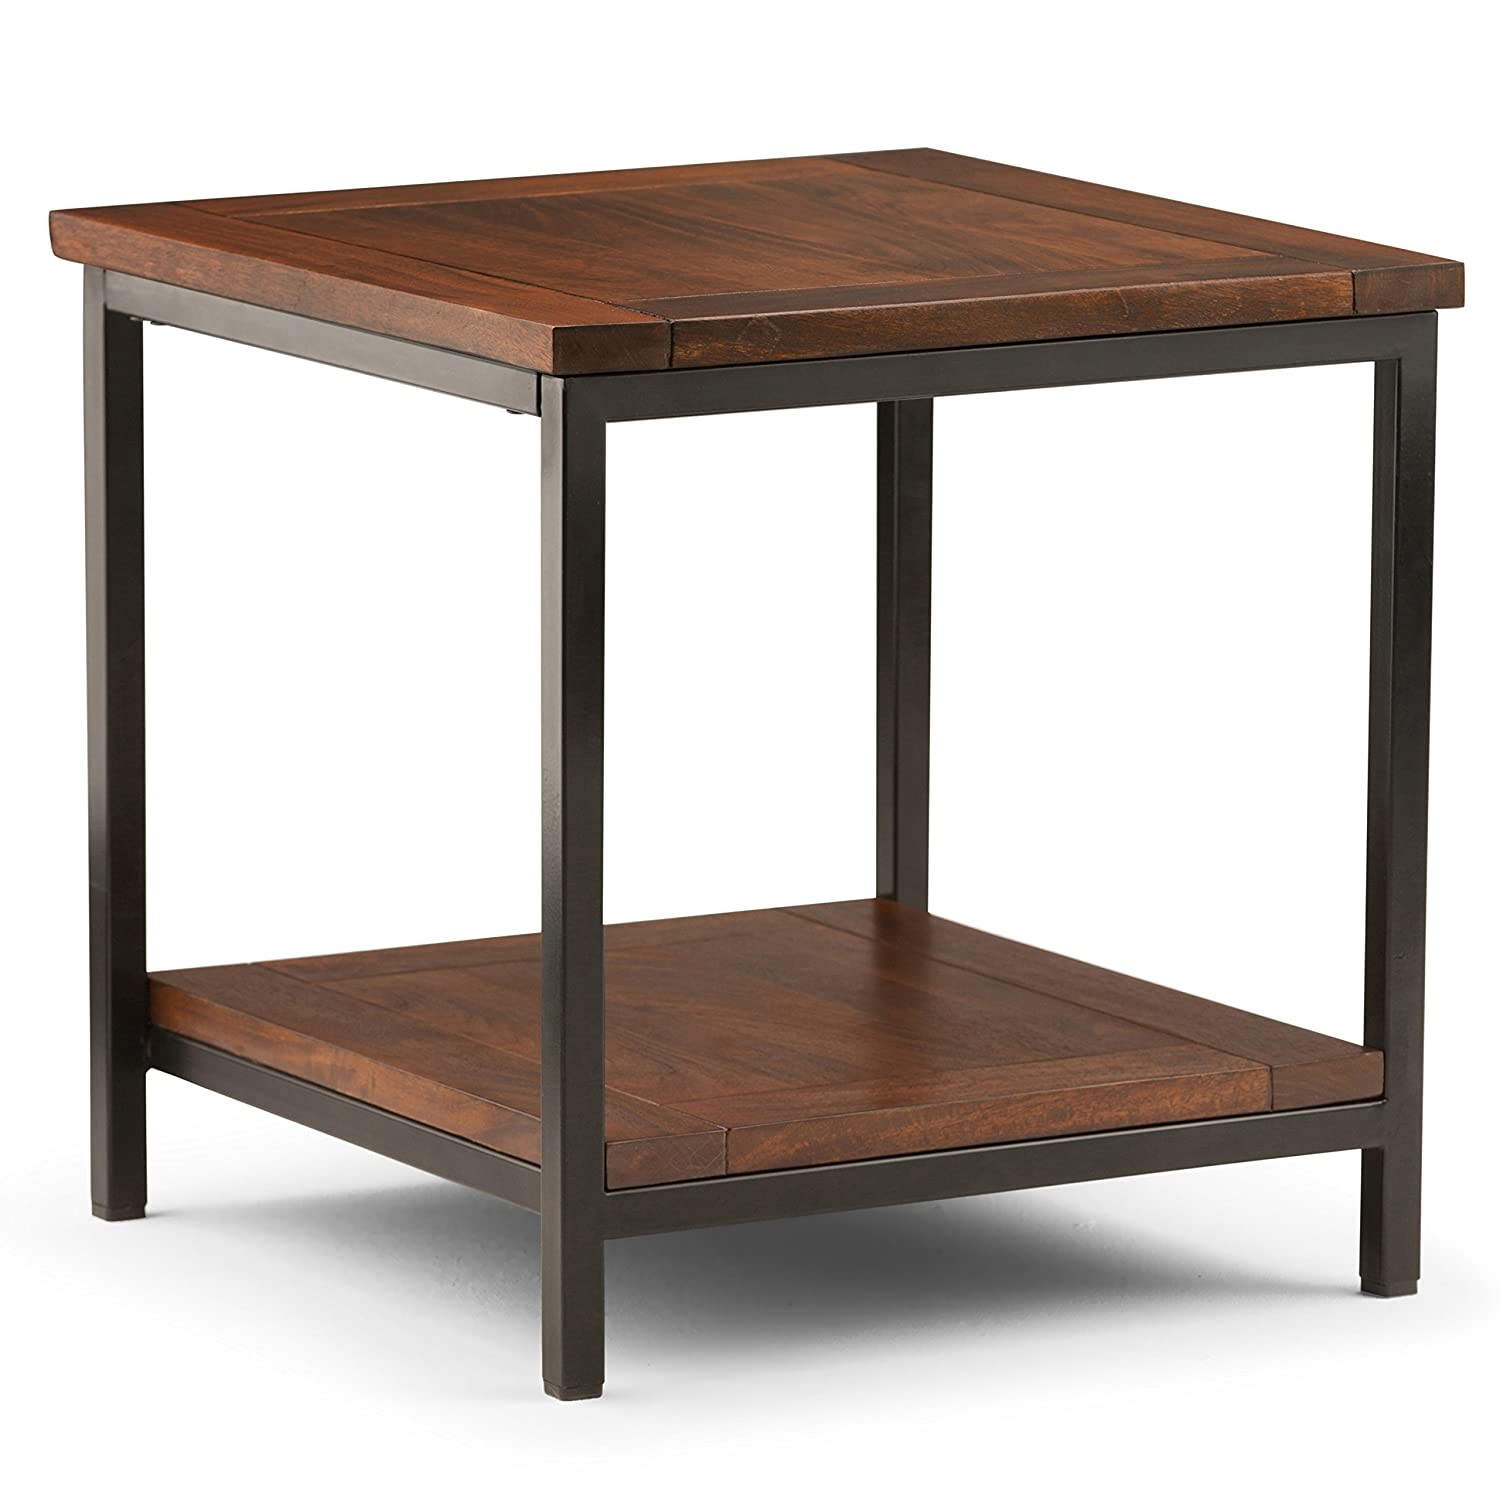 Simpli Home Skyler Solid Mango Wood & Metal Coffee Table, Dark Cognac Brown Ltd. 3AXCSKY-01